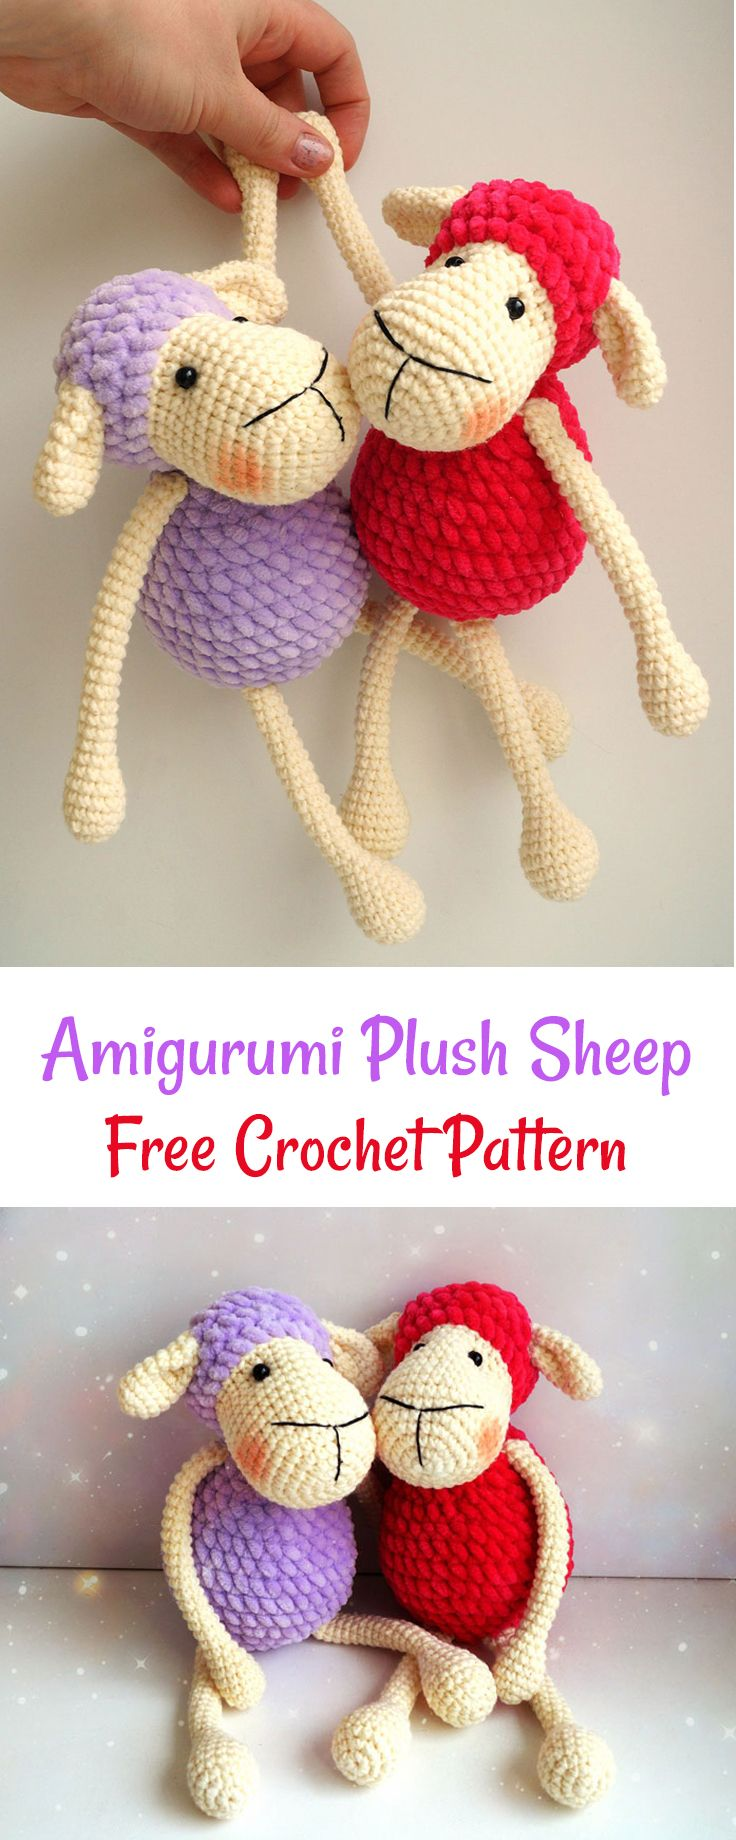 This FREE crochet pattern is super-easy and perfect for beginners ...